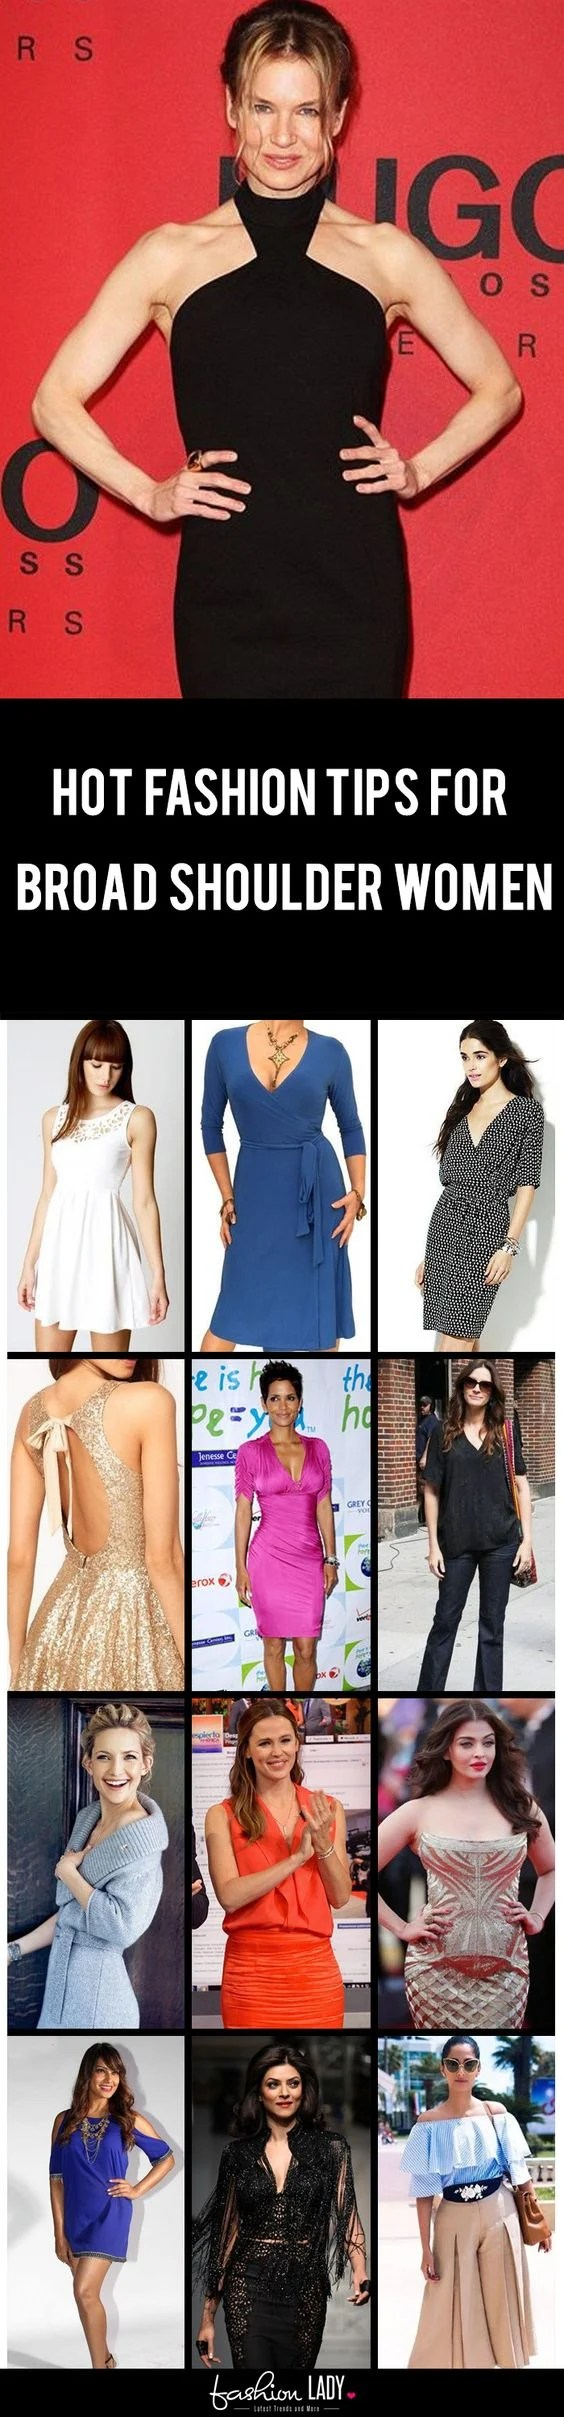 22 fashion tips for broad shoulder women - how to reduce